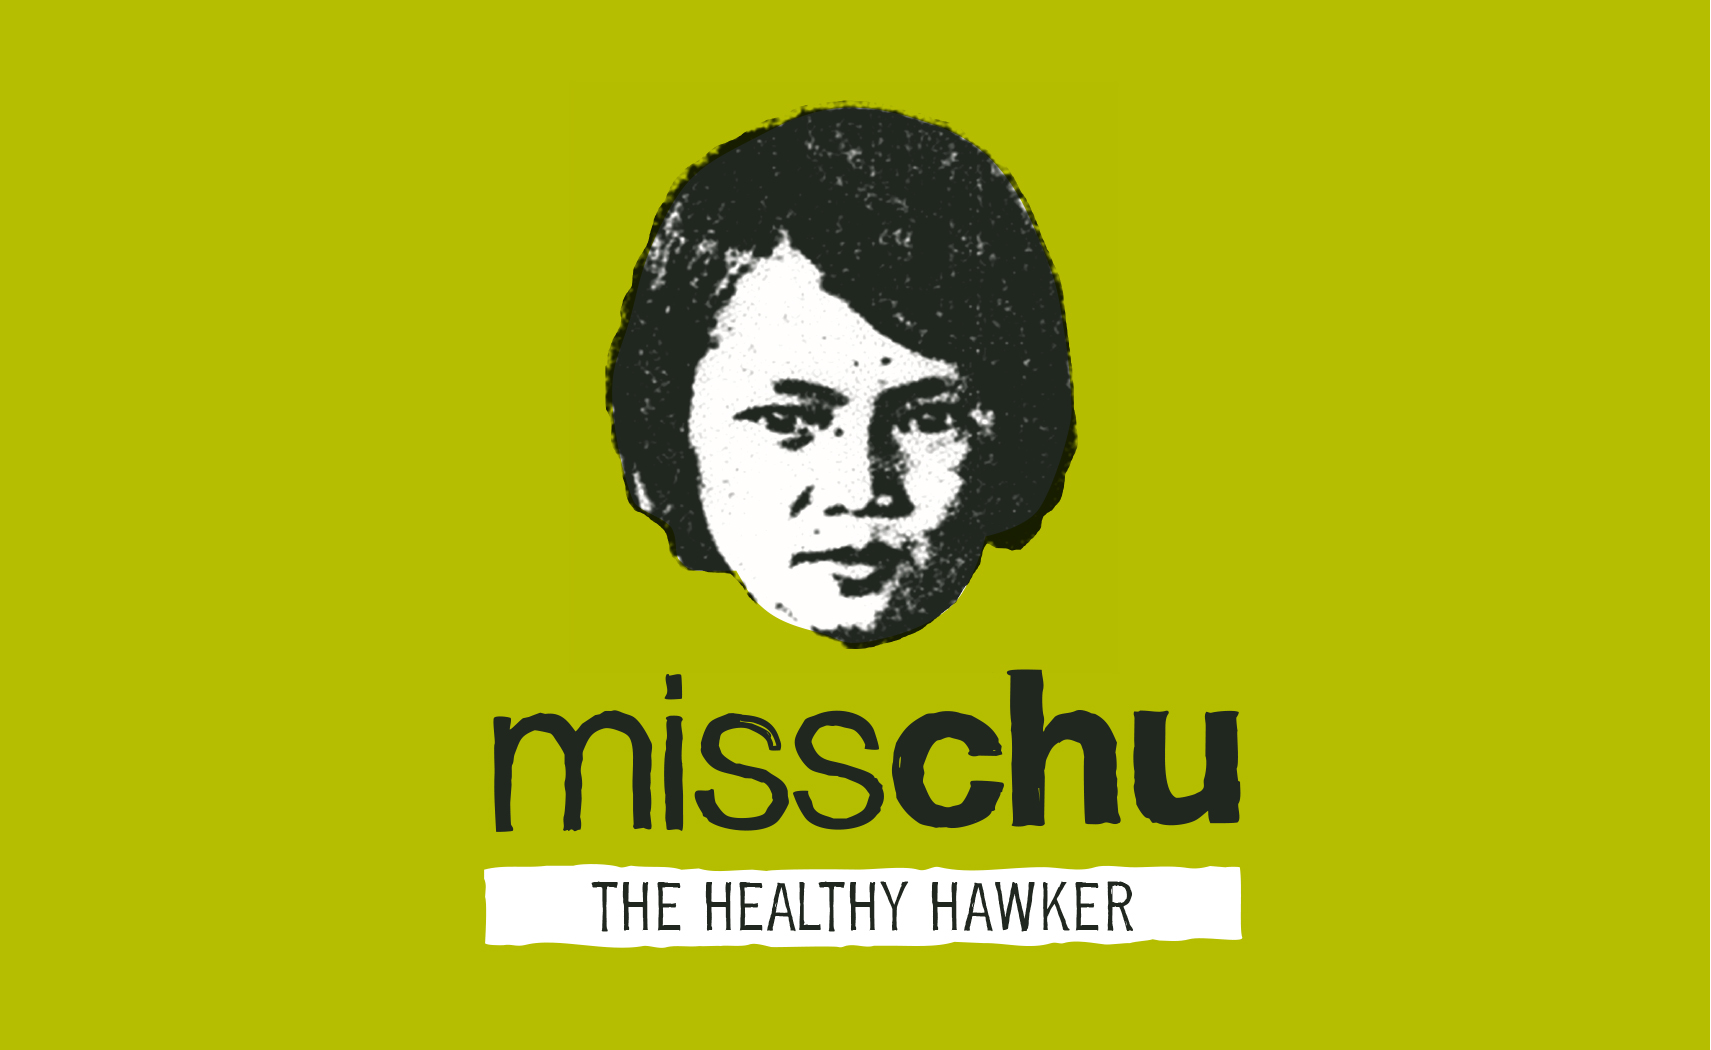 MISSCHU - The Healthy Hawker, Canberra